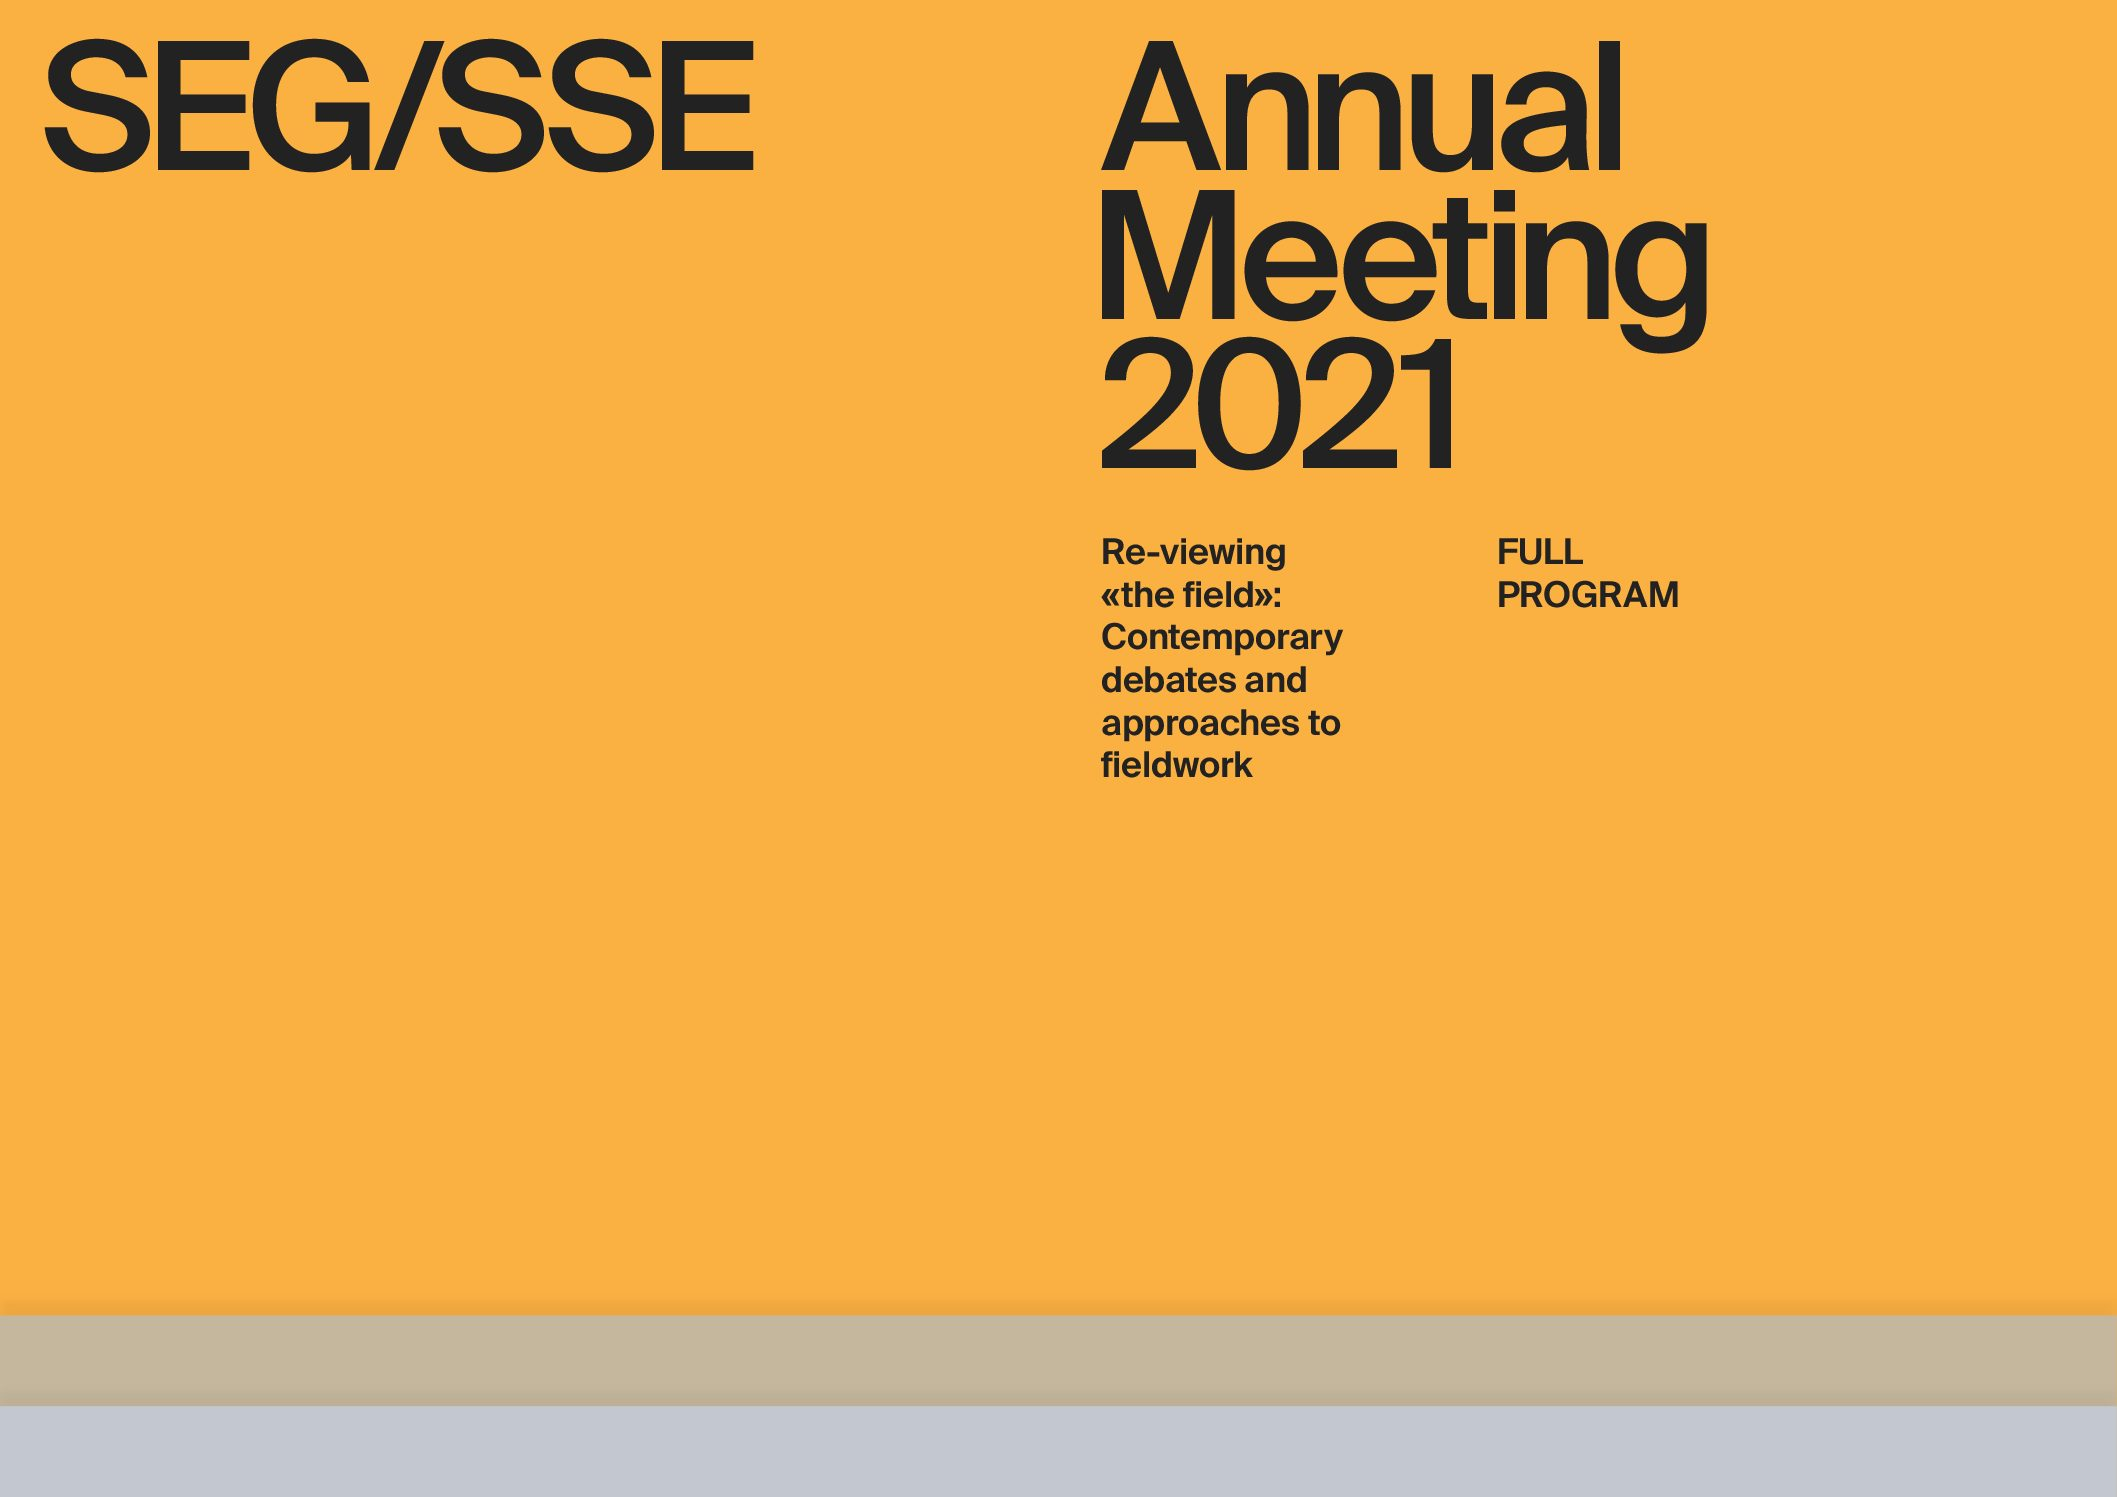 SEG/SSE Annual Meeting 2021